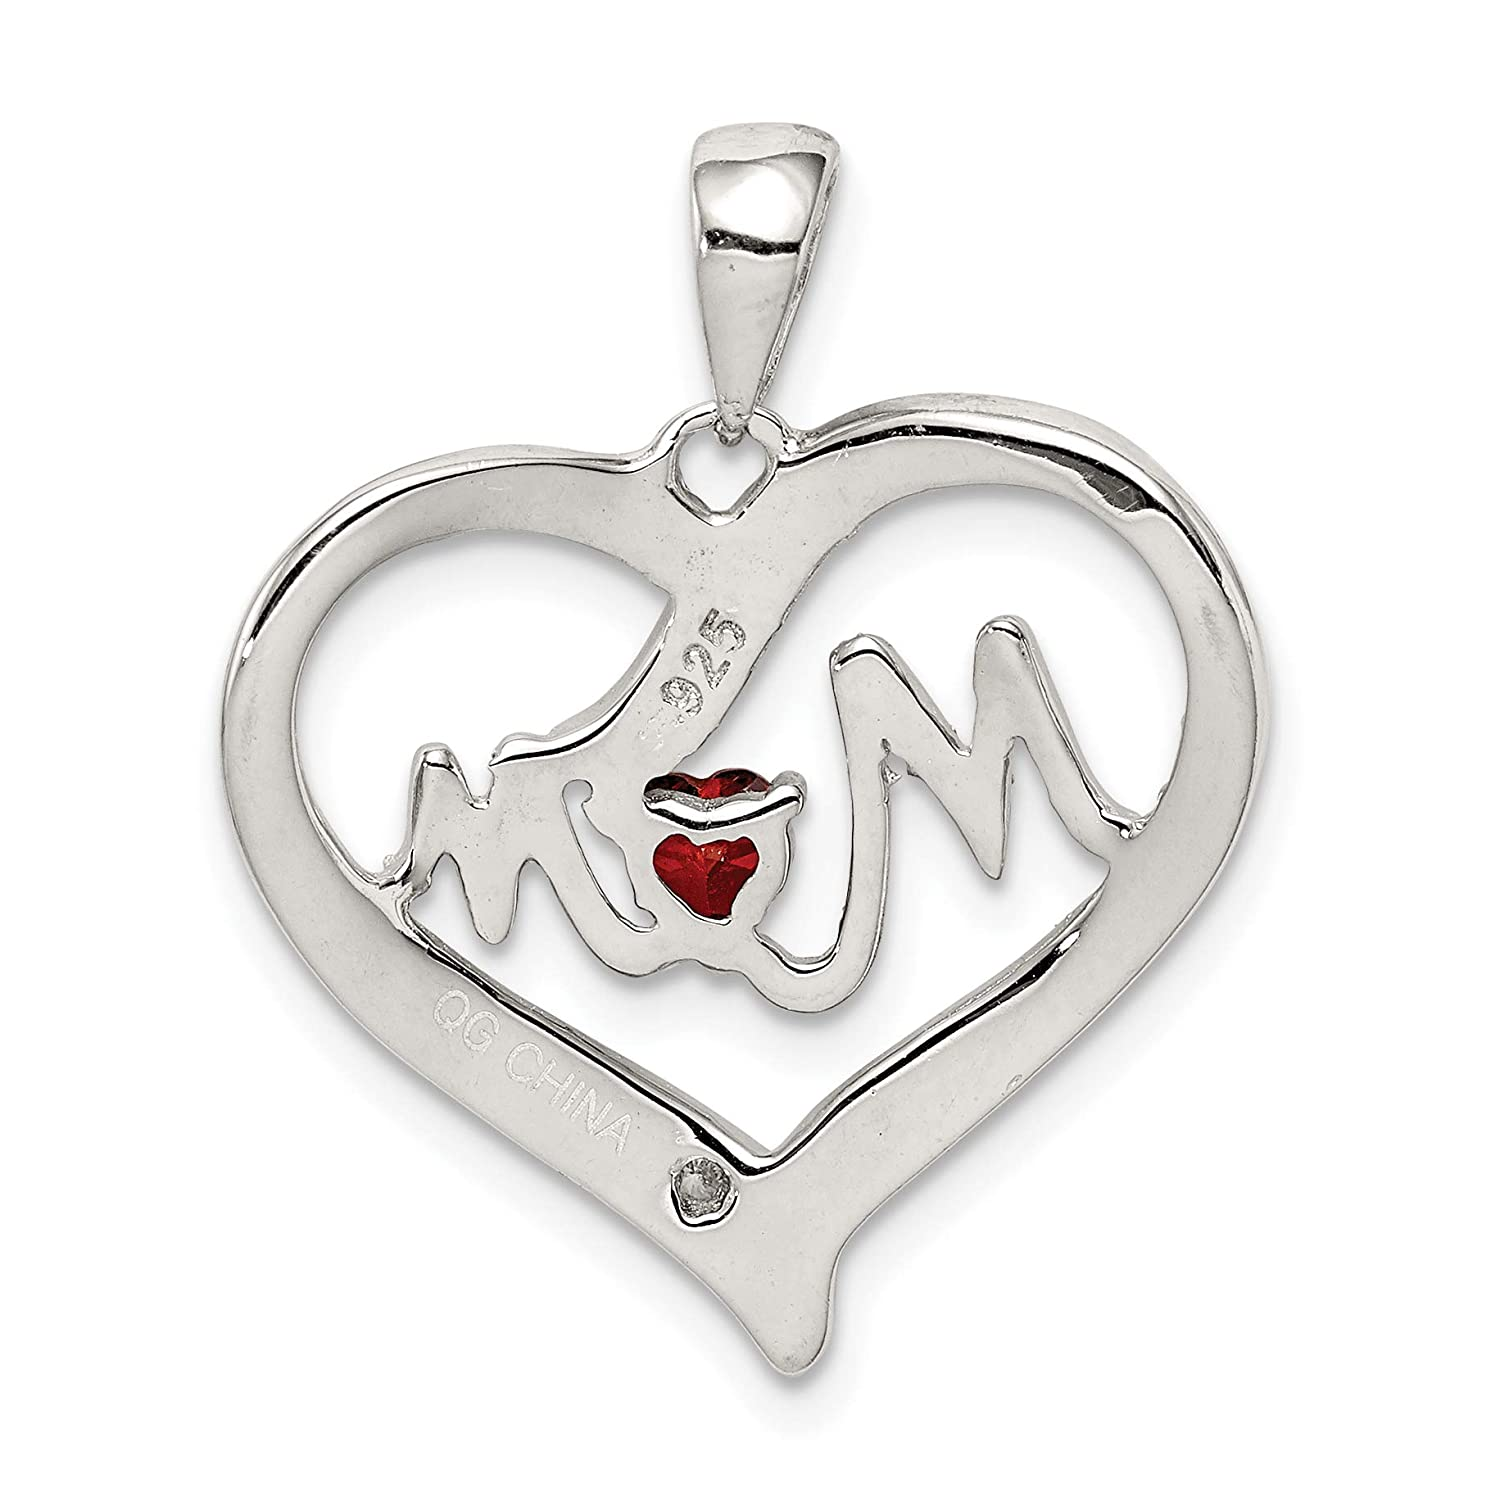 approximately 22 x 21 mm Mireval Sterling Silver CZ Mom Heart Pendant